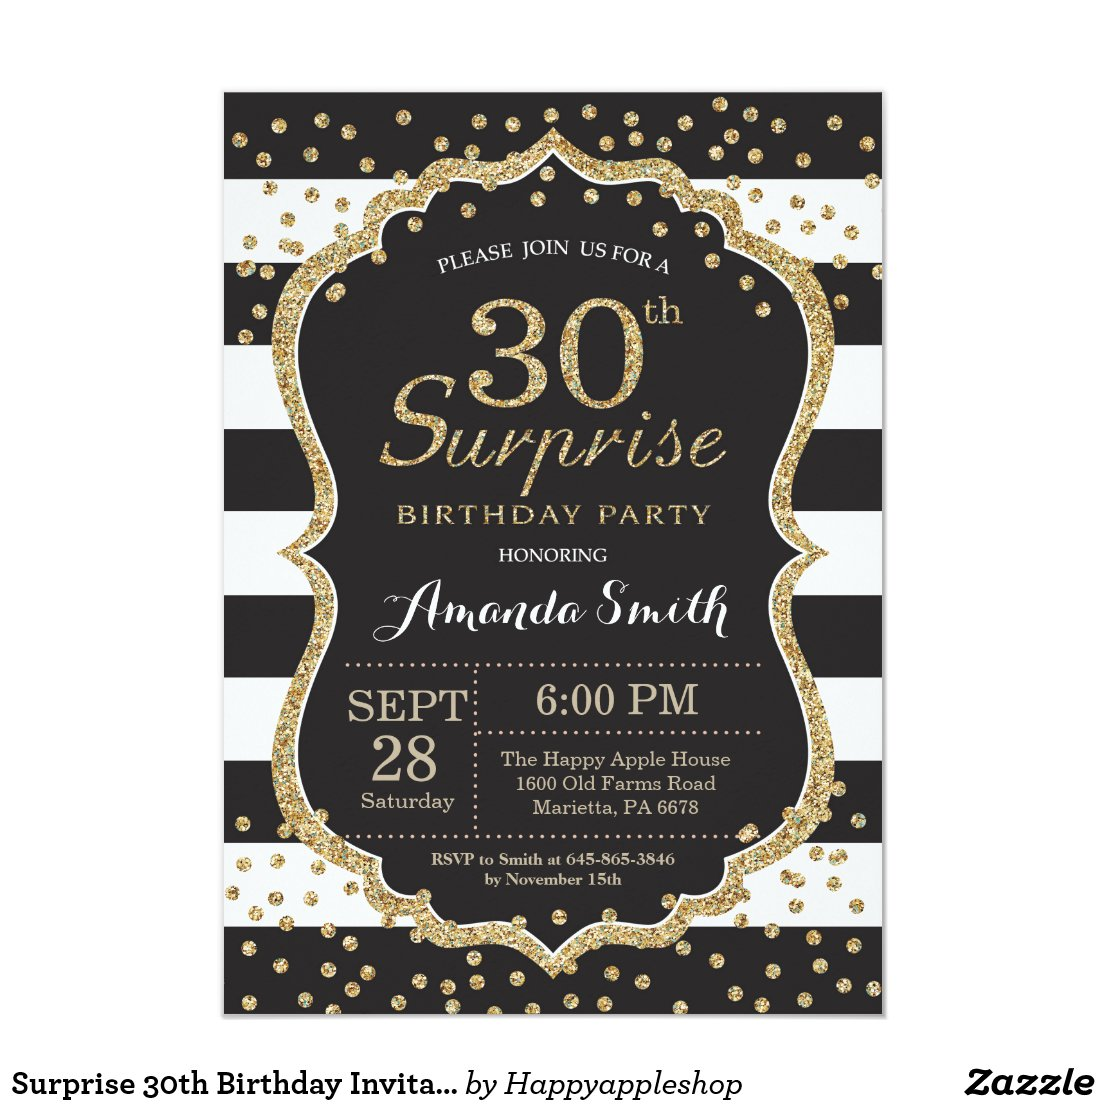 Surprise 30th Birthday Invitation. Gold Glitter Invitation